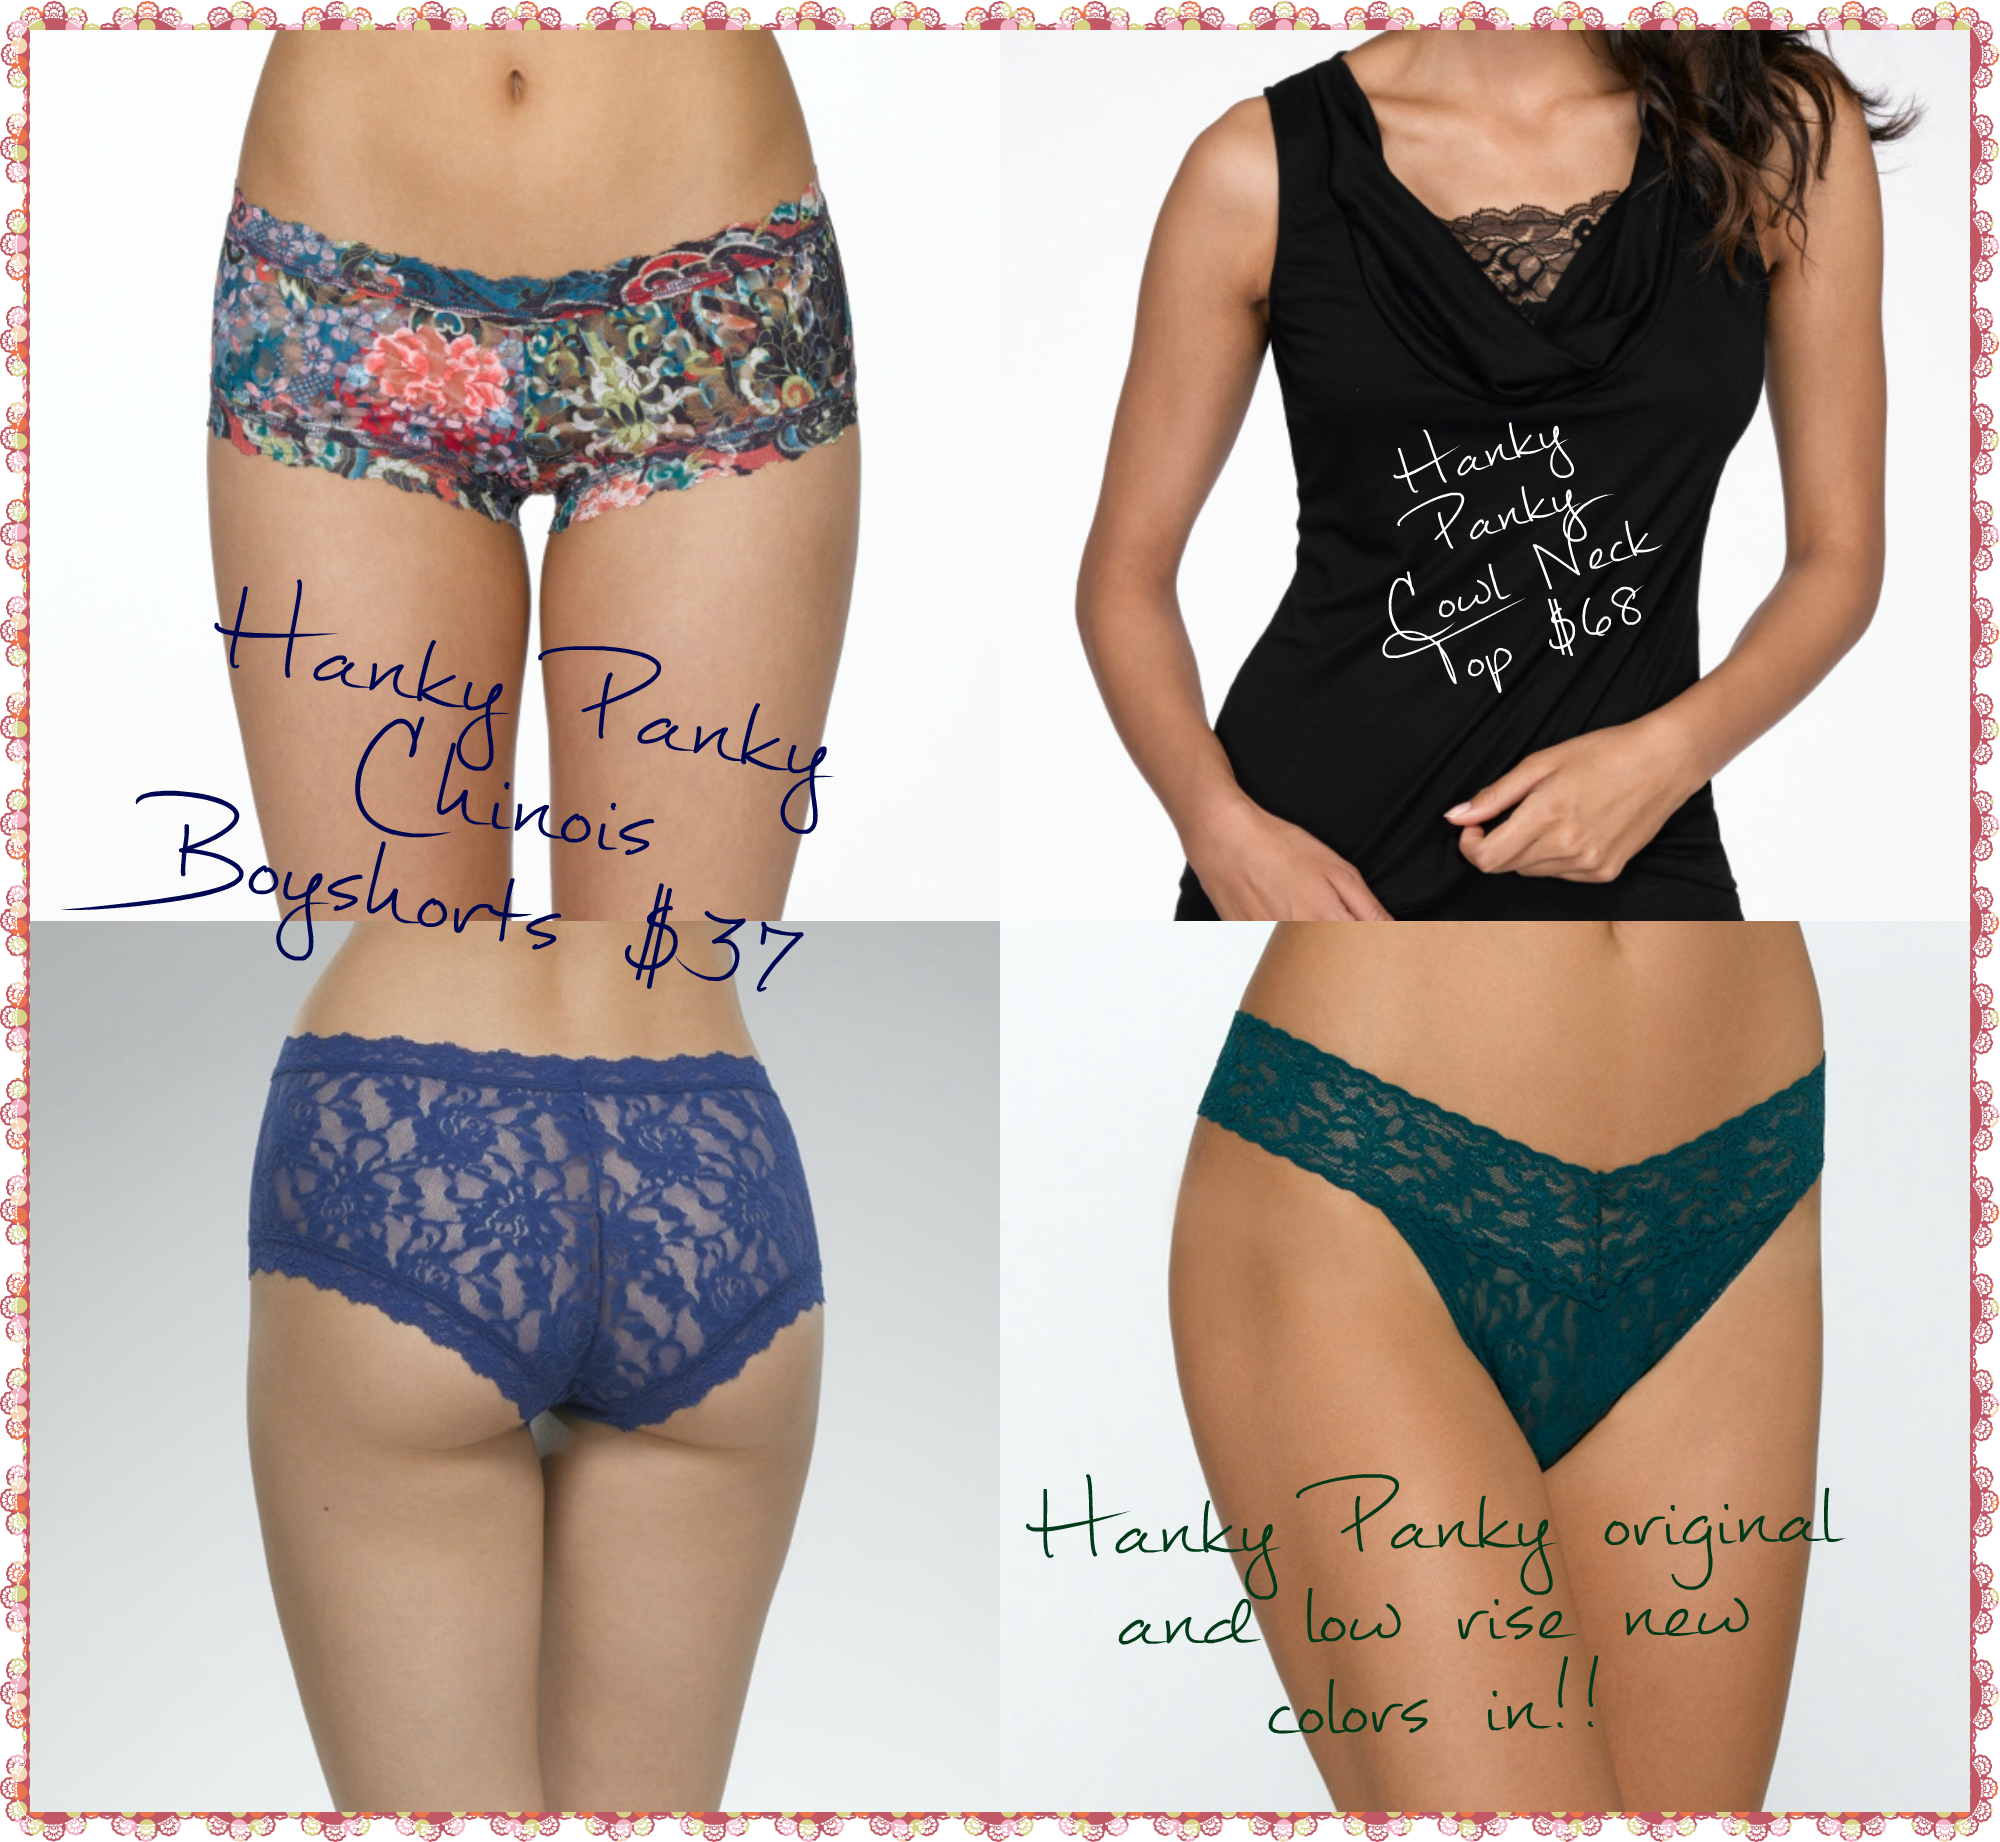 New shipment of Hanky Panky's including: Chinois Boyshort: Embrace the vibrant colors of Chinois. • Boyshort panty in signature lace • Mid-rise  • Low leg  • Back coverage • Body: 100% Nylon; Trim: 90% Nylon, 10% Spandex; Crotch Lining: 100% Supima® Cotton  Available size XS-M  Cowl Neck Top  A perfect Fall top for ur wardrobe • Scoop neck tank in our Lyocell material • Features a lace panel across the chest Available size S-L Along w/ new colors in both low & original rise thongs!!